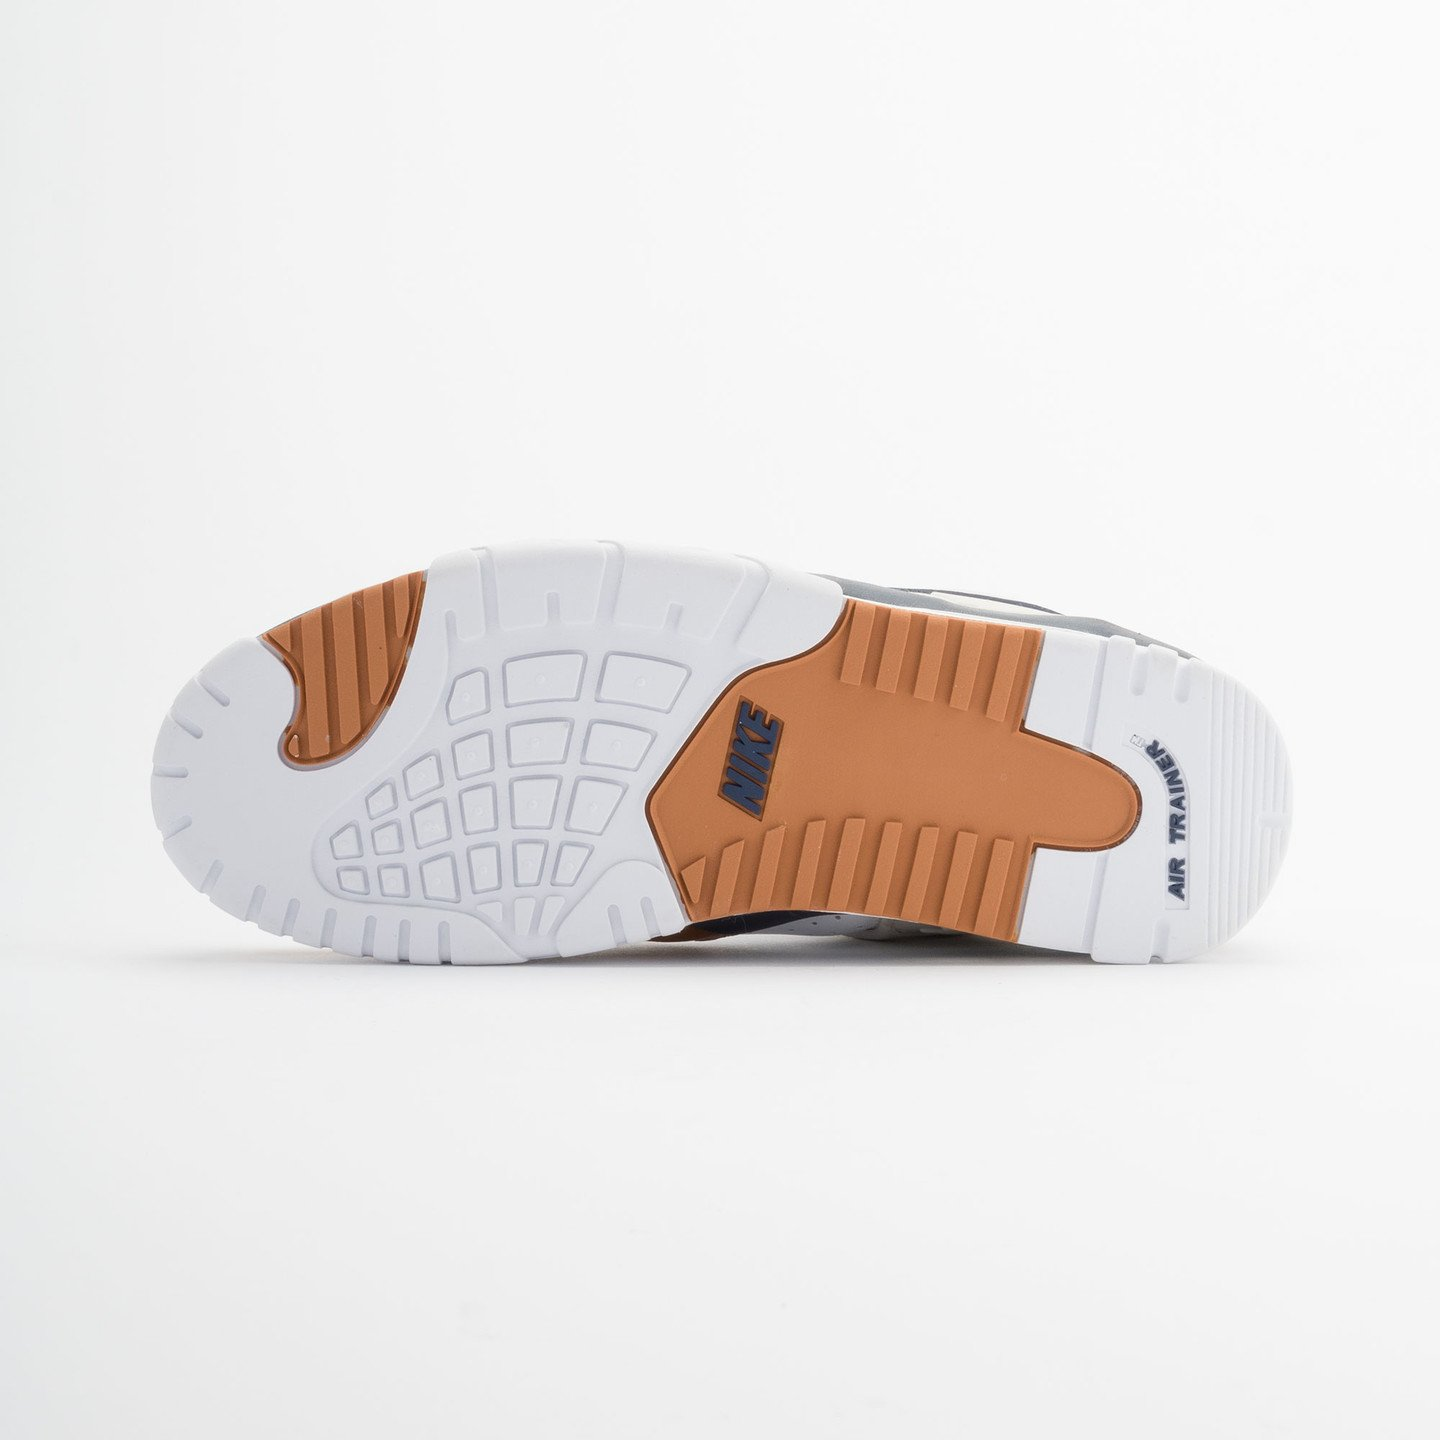 Nike Air Trainer 3 Premium Medicine Ball White/Mid Navy-Gngr-Lght Bn 705425-100-47.5